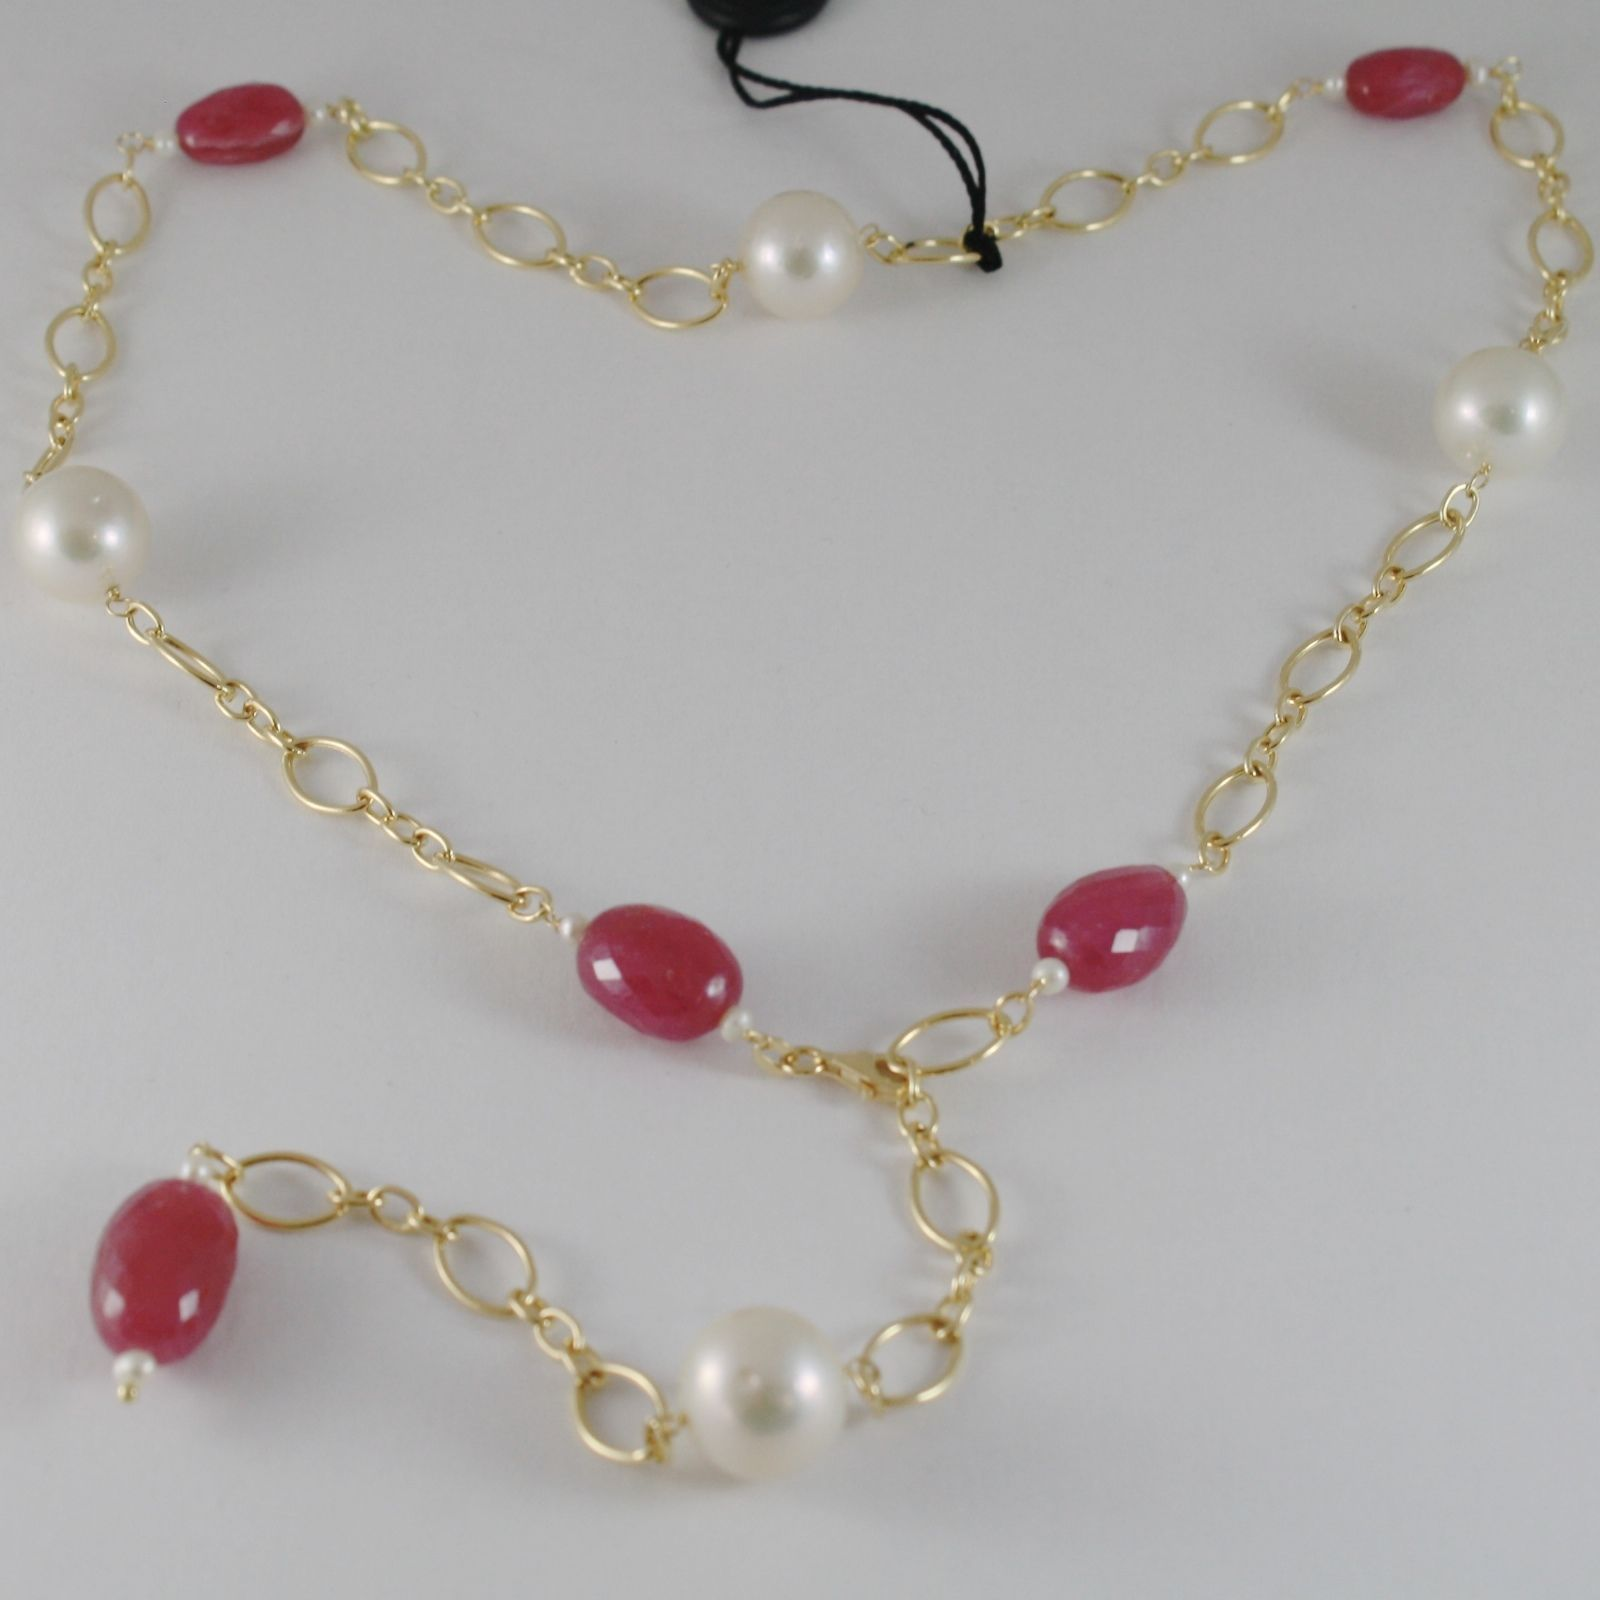 18K YELLOW GOLD NECKLACE BIG WHITE PEARLS & RUBIES, LARIAT / CHAIN MADE IN ITALY